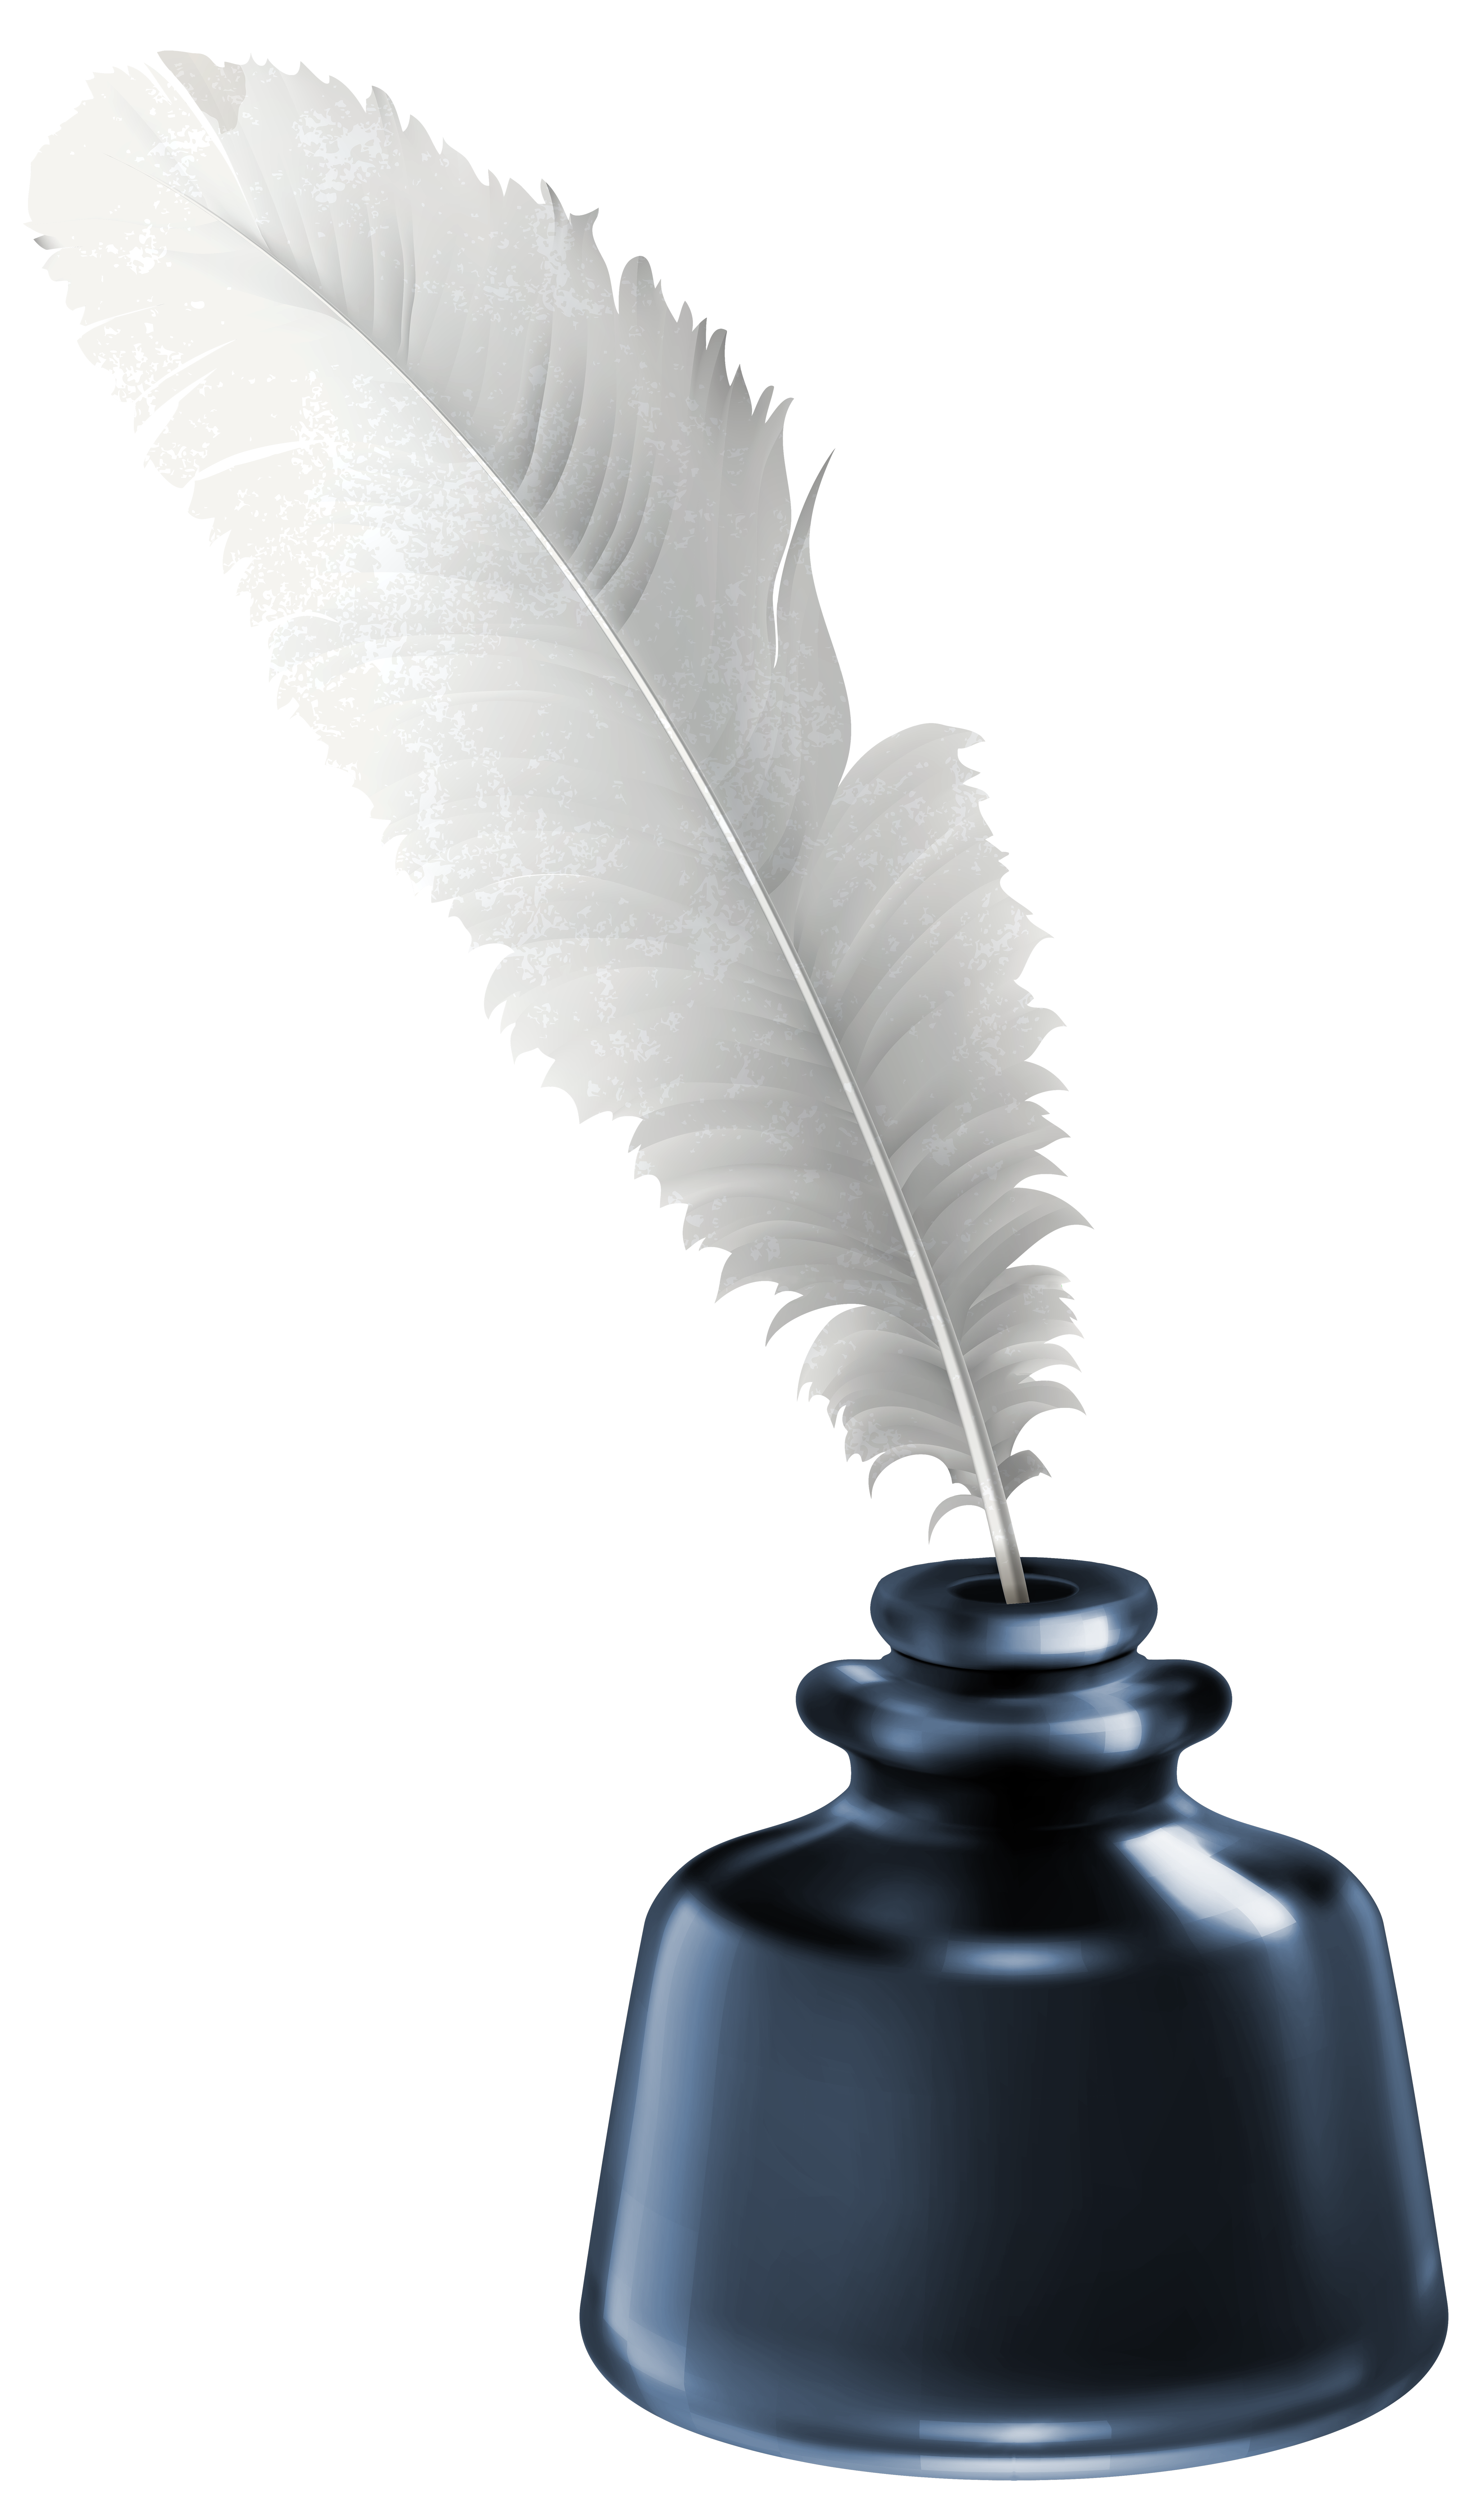 Feather Clipart Ink Feather Ink Transparent Free For Download On Webstockreview 2020